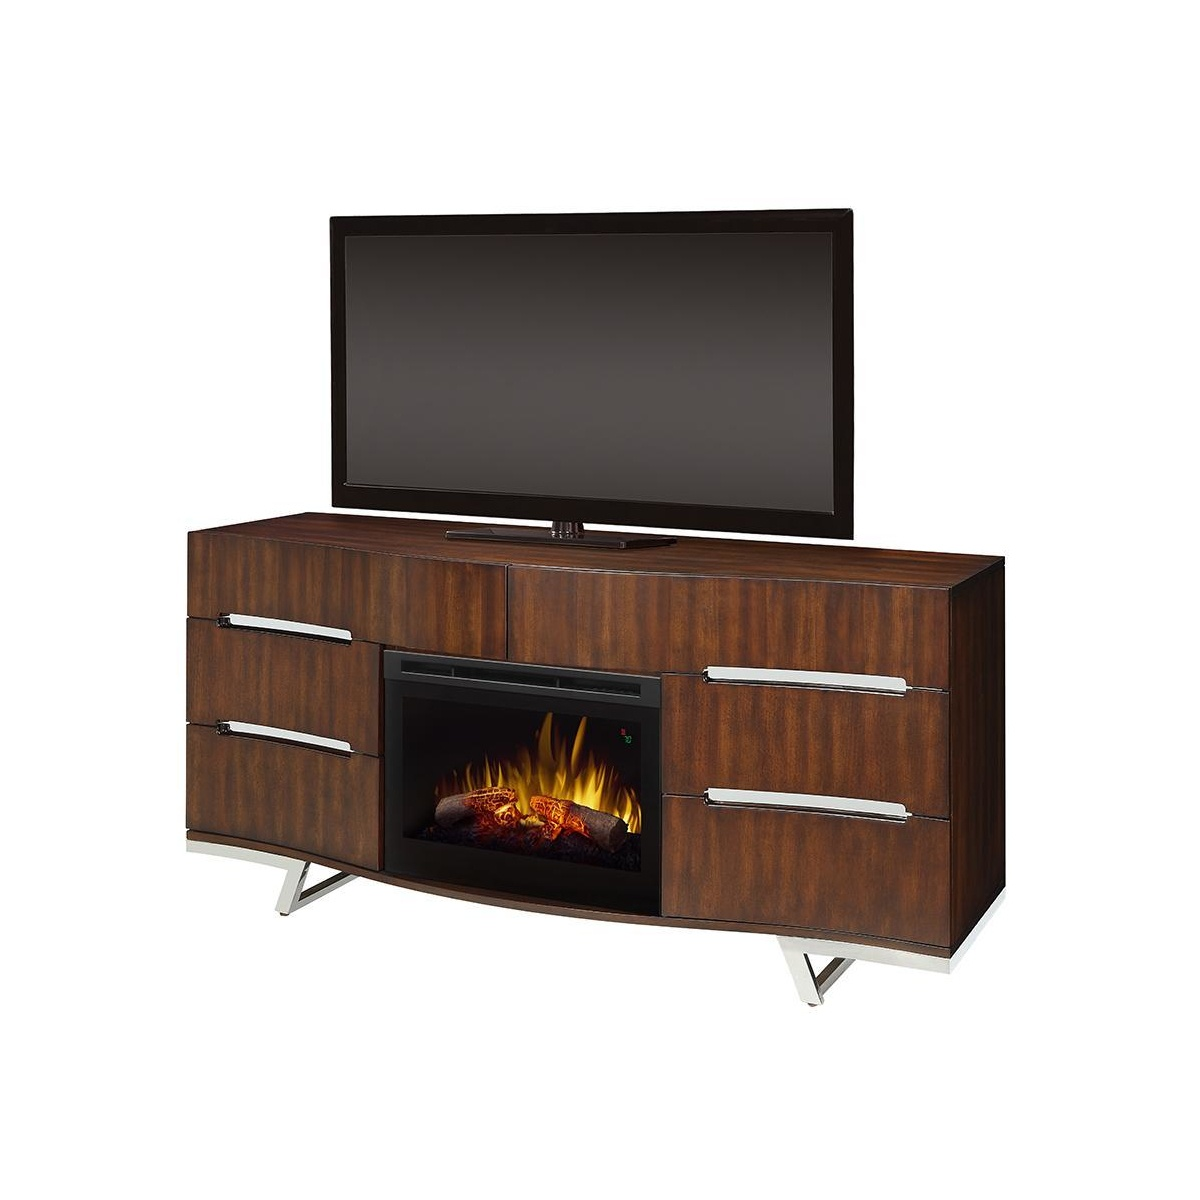 dimplex DFR2551L electric fireplace with logs inside a curved cherry wood-finish media console with large TV on top